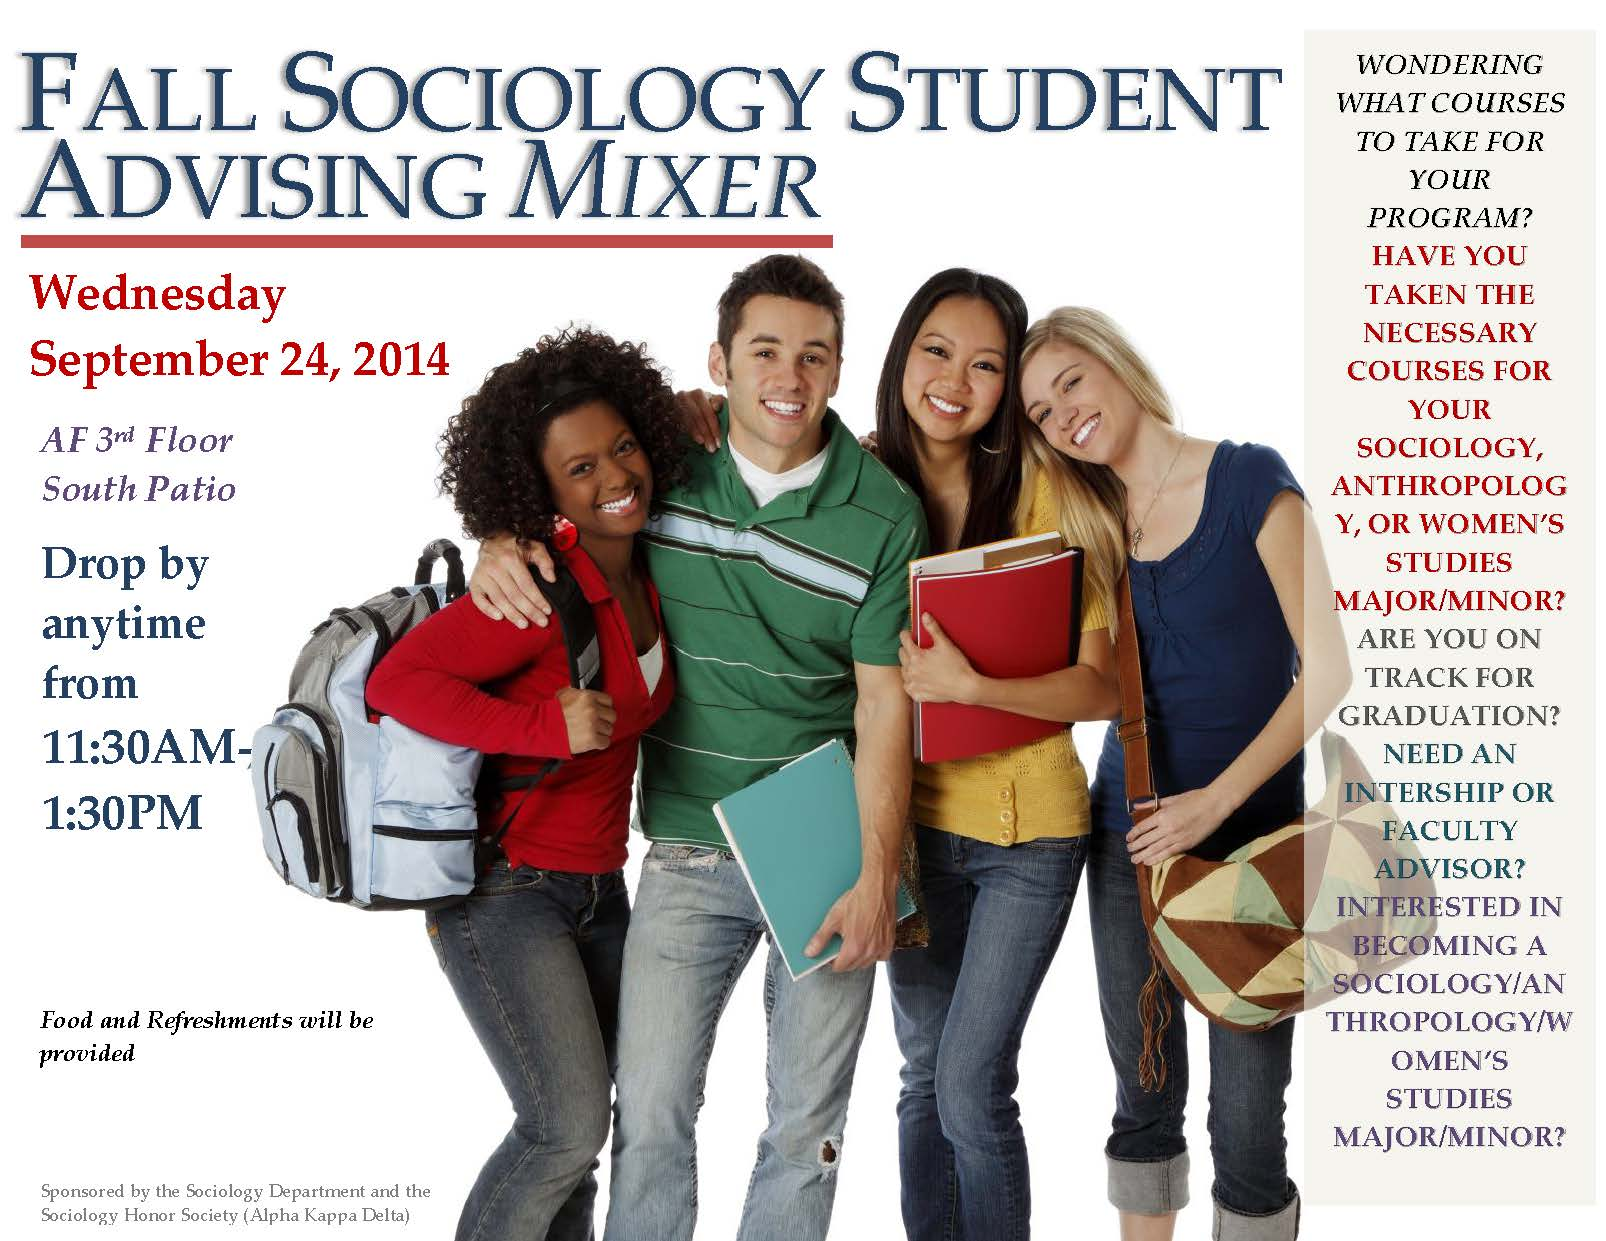 Flyer for Fall Sociology Student Advising Mixer.